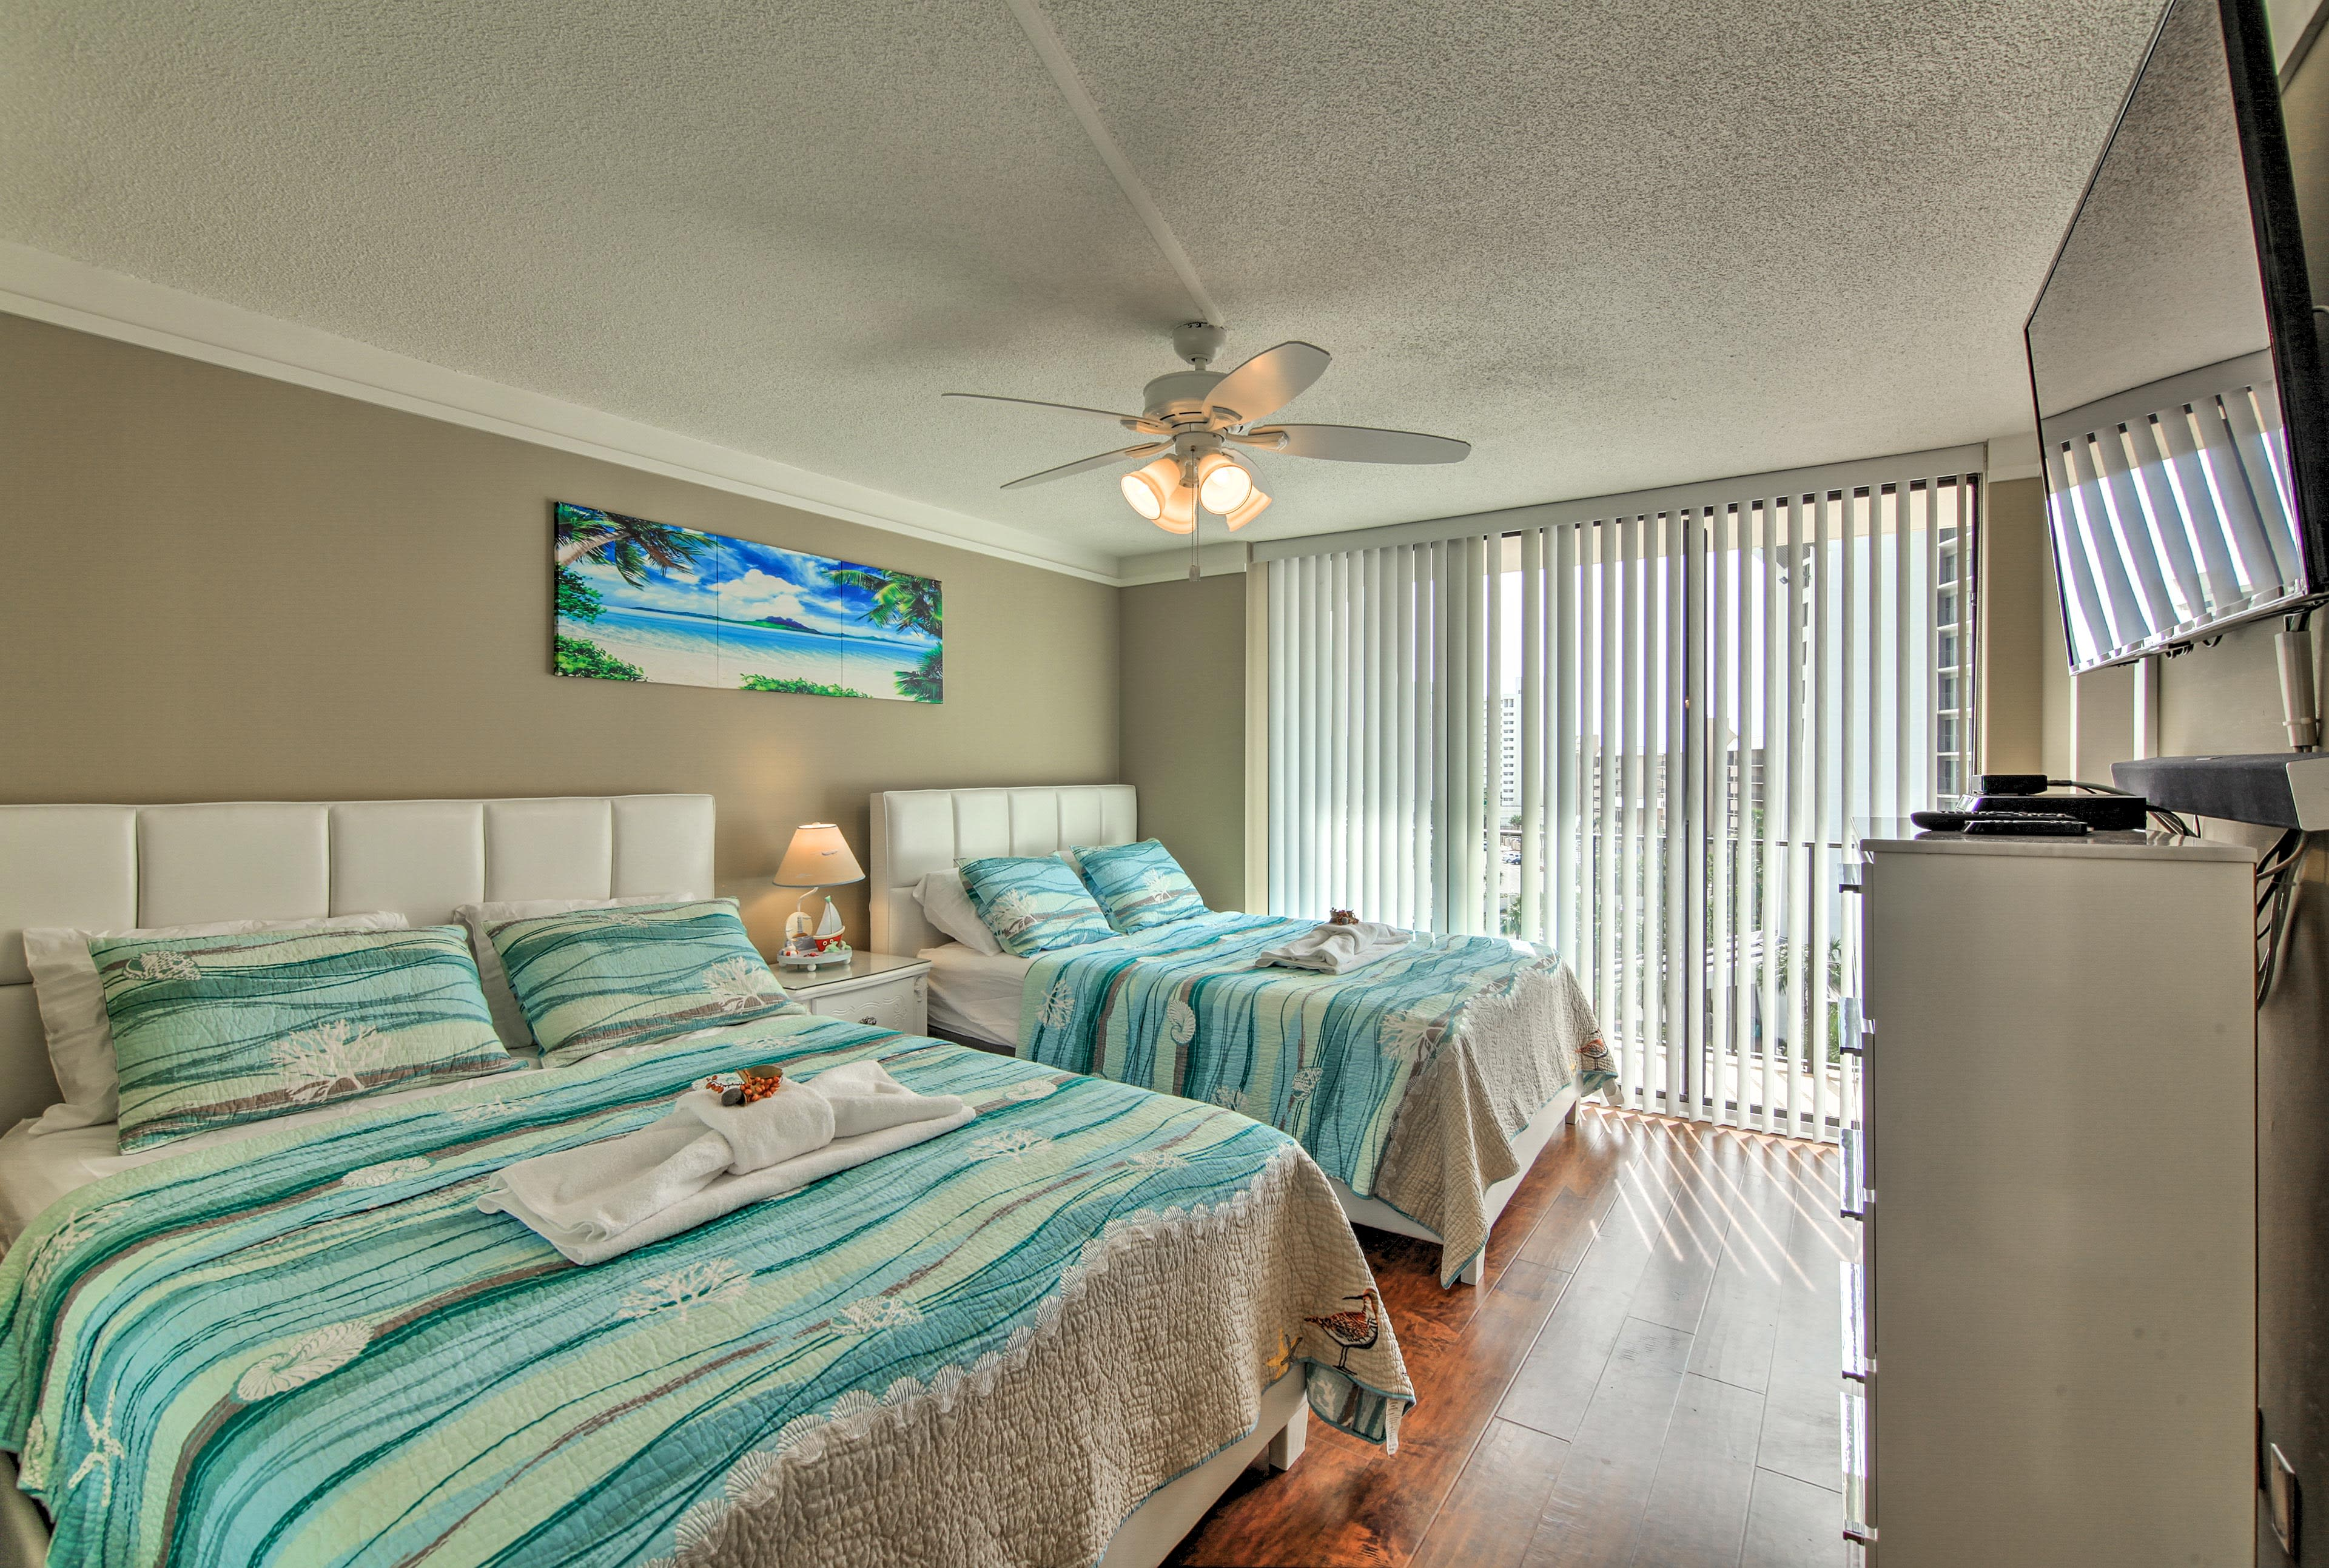 This second bedroom houses 2 queen-sized beds.